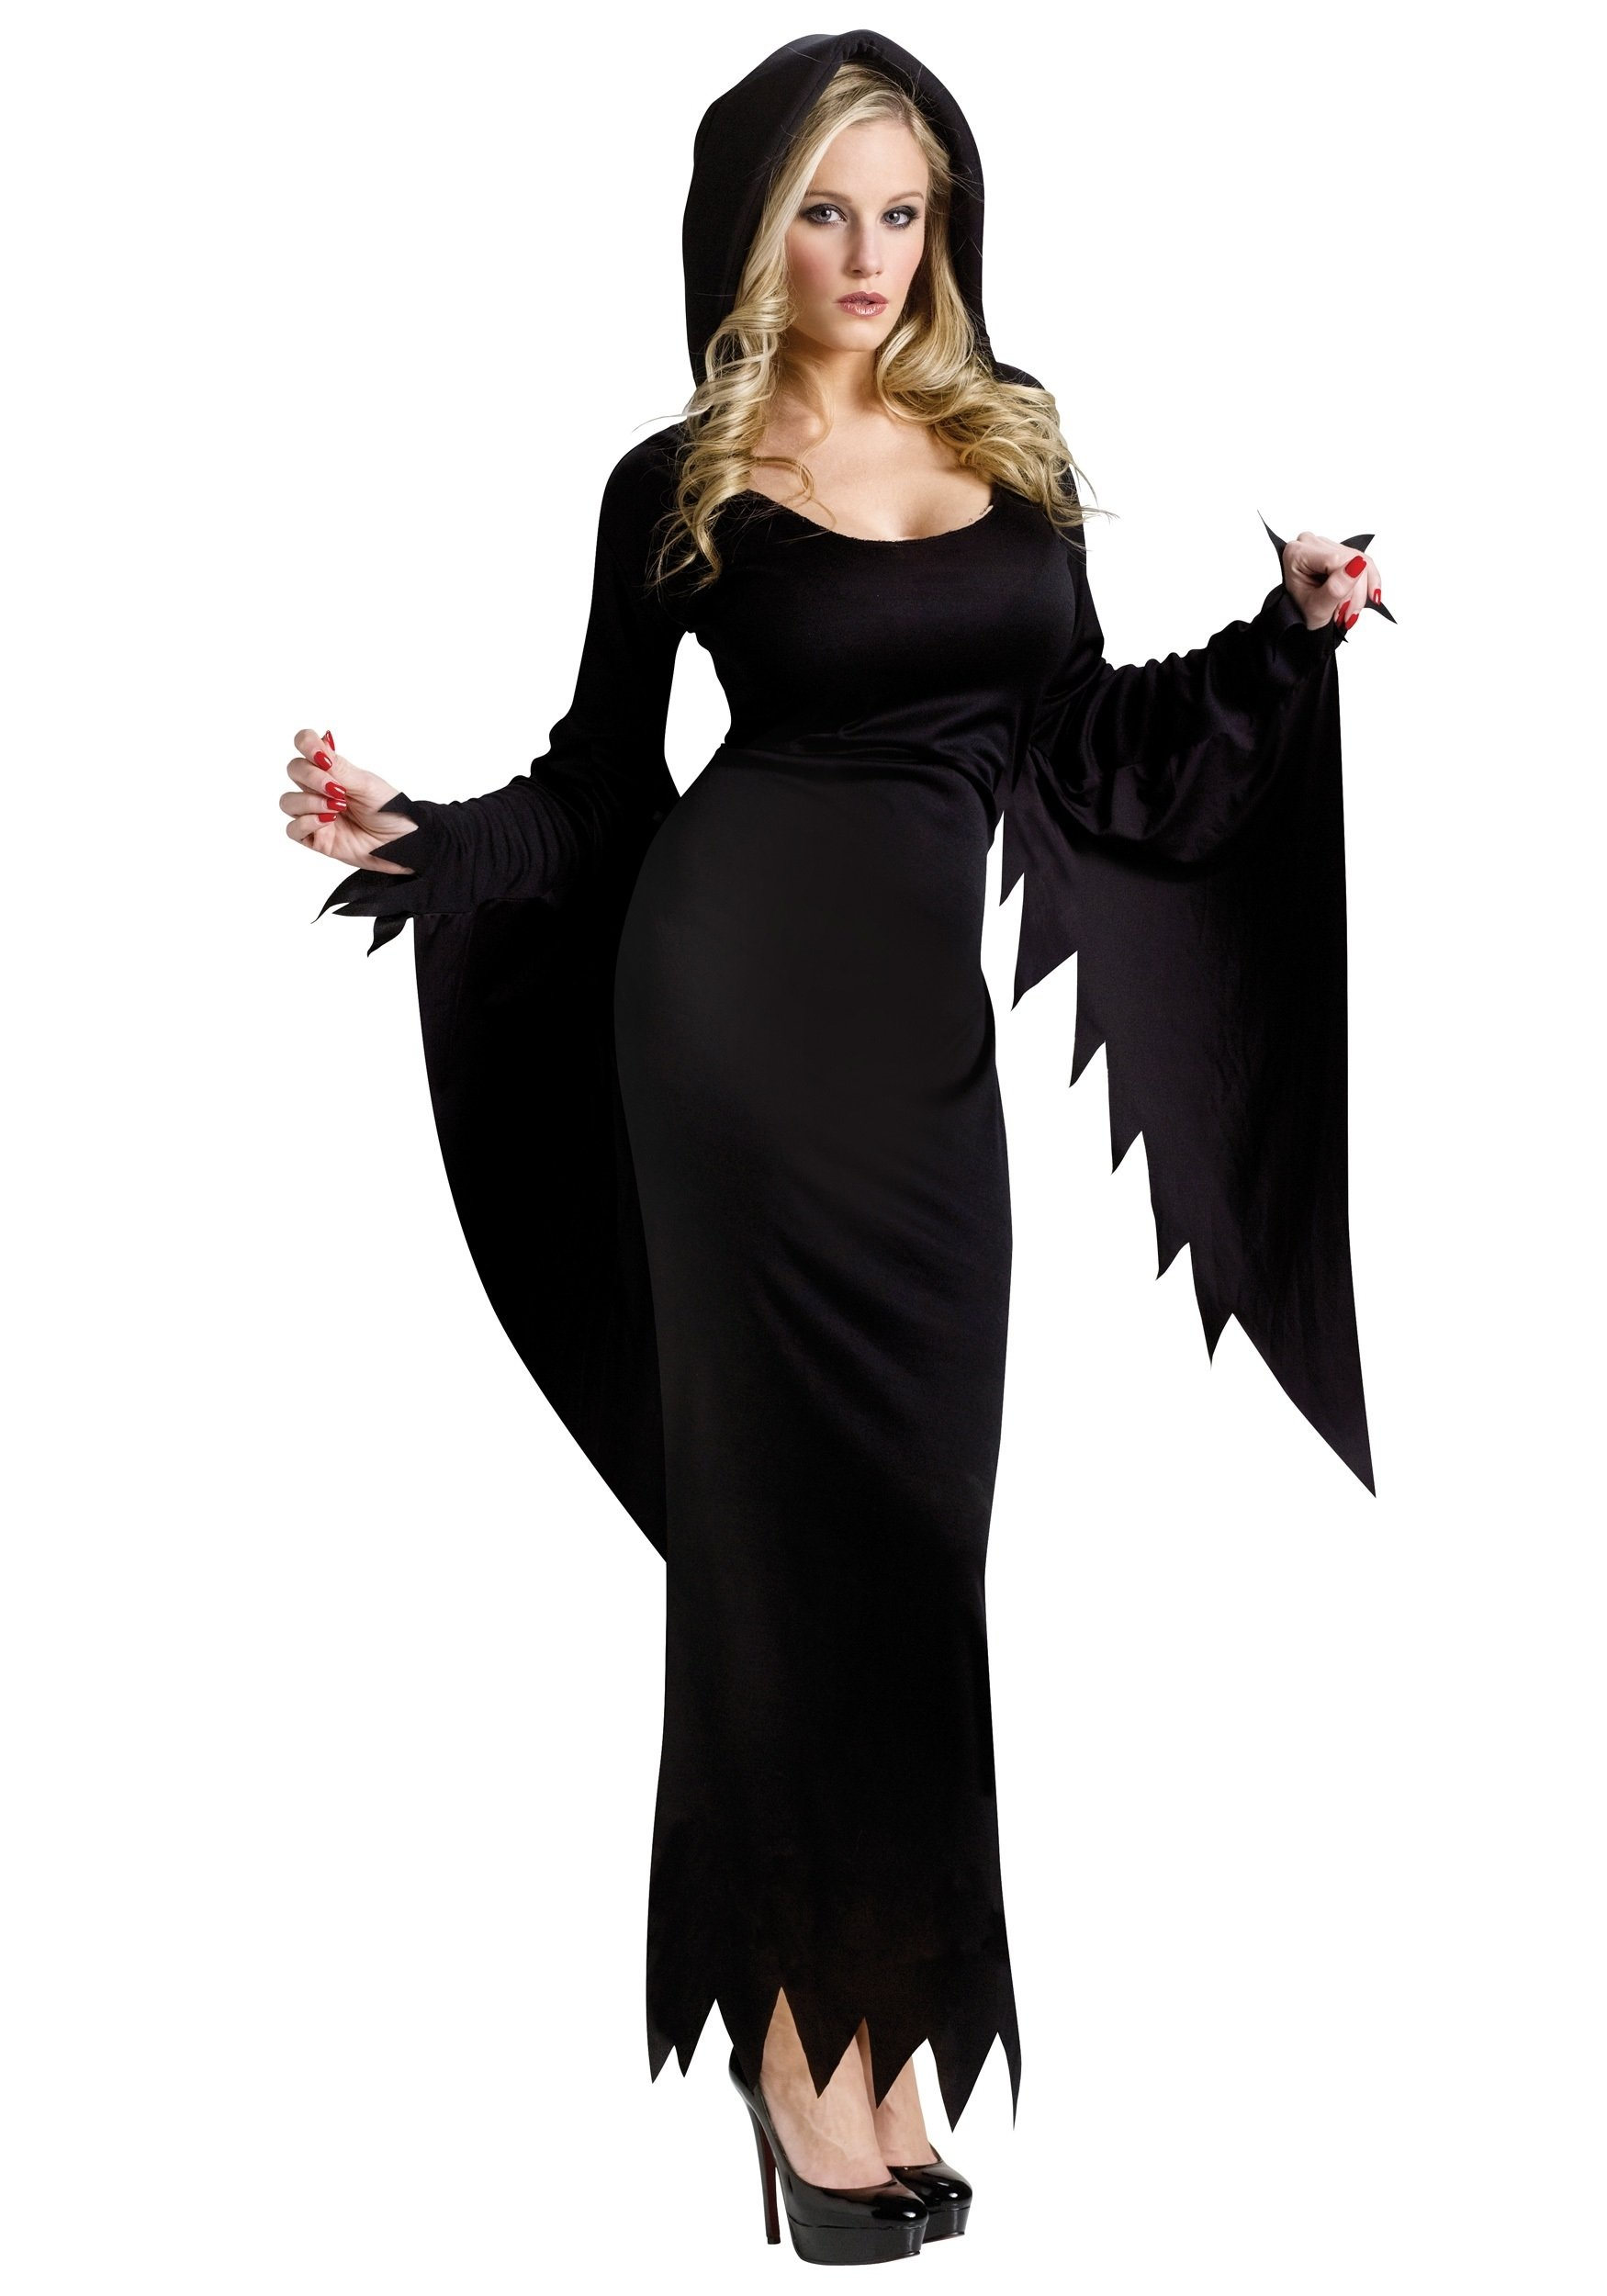 10 Wonderful Witch Costume Ideas For Women black hooded gown witch vampire costume ideas 2020